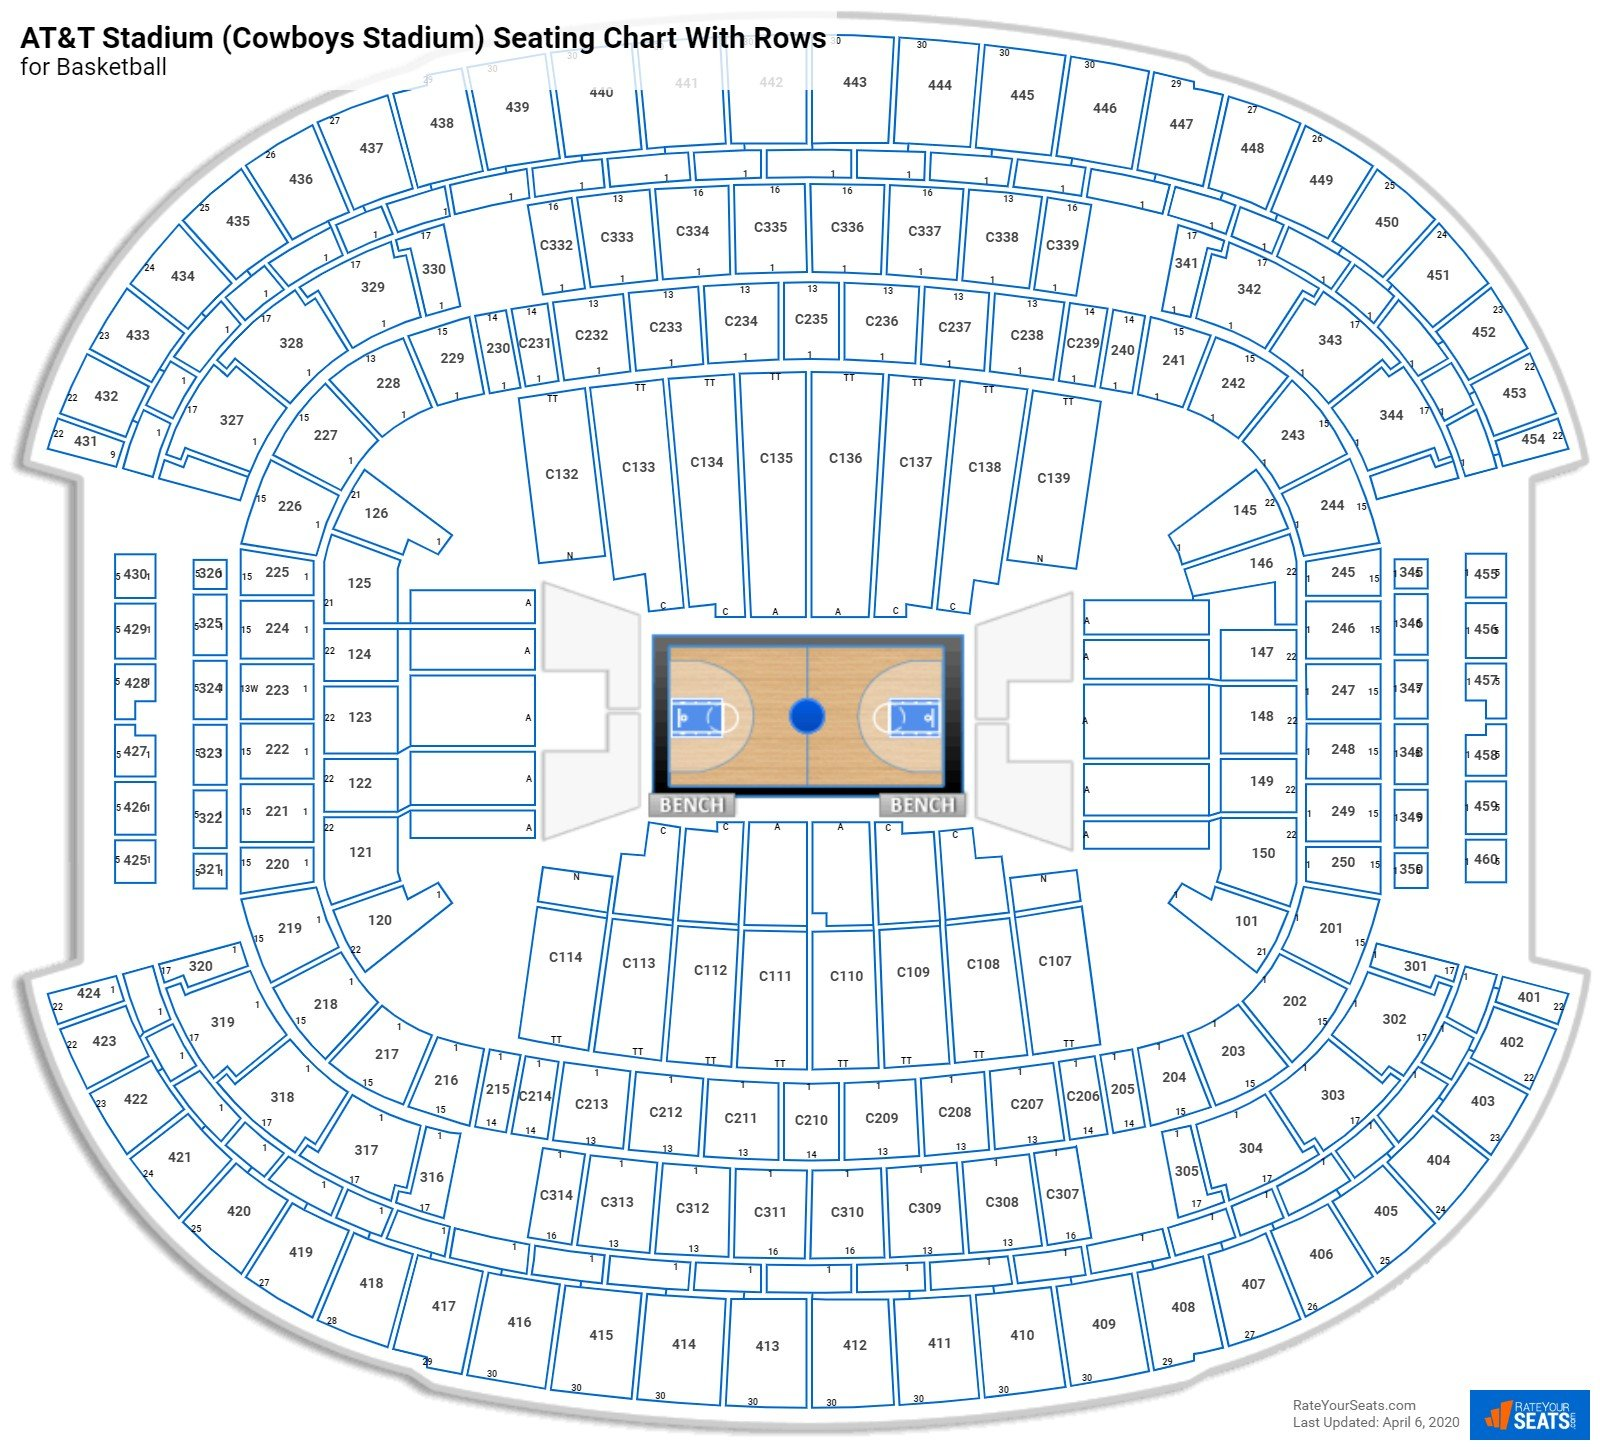 AT&T Stadium Seating for Basketball - RateYourSeats.com